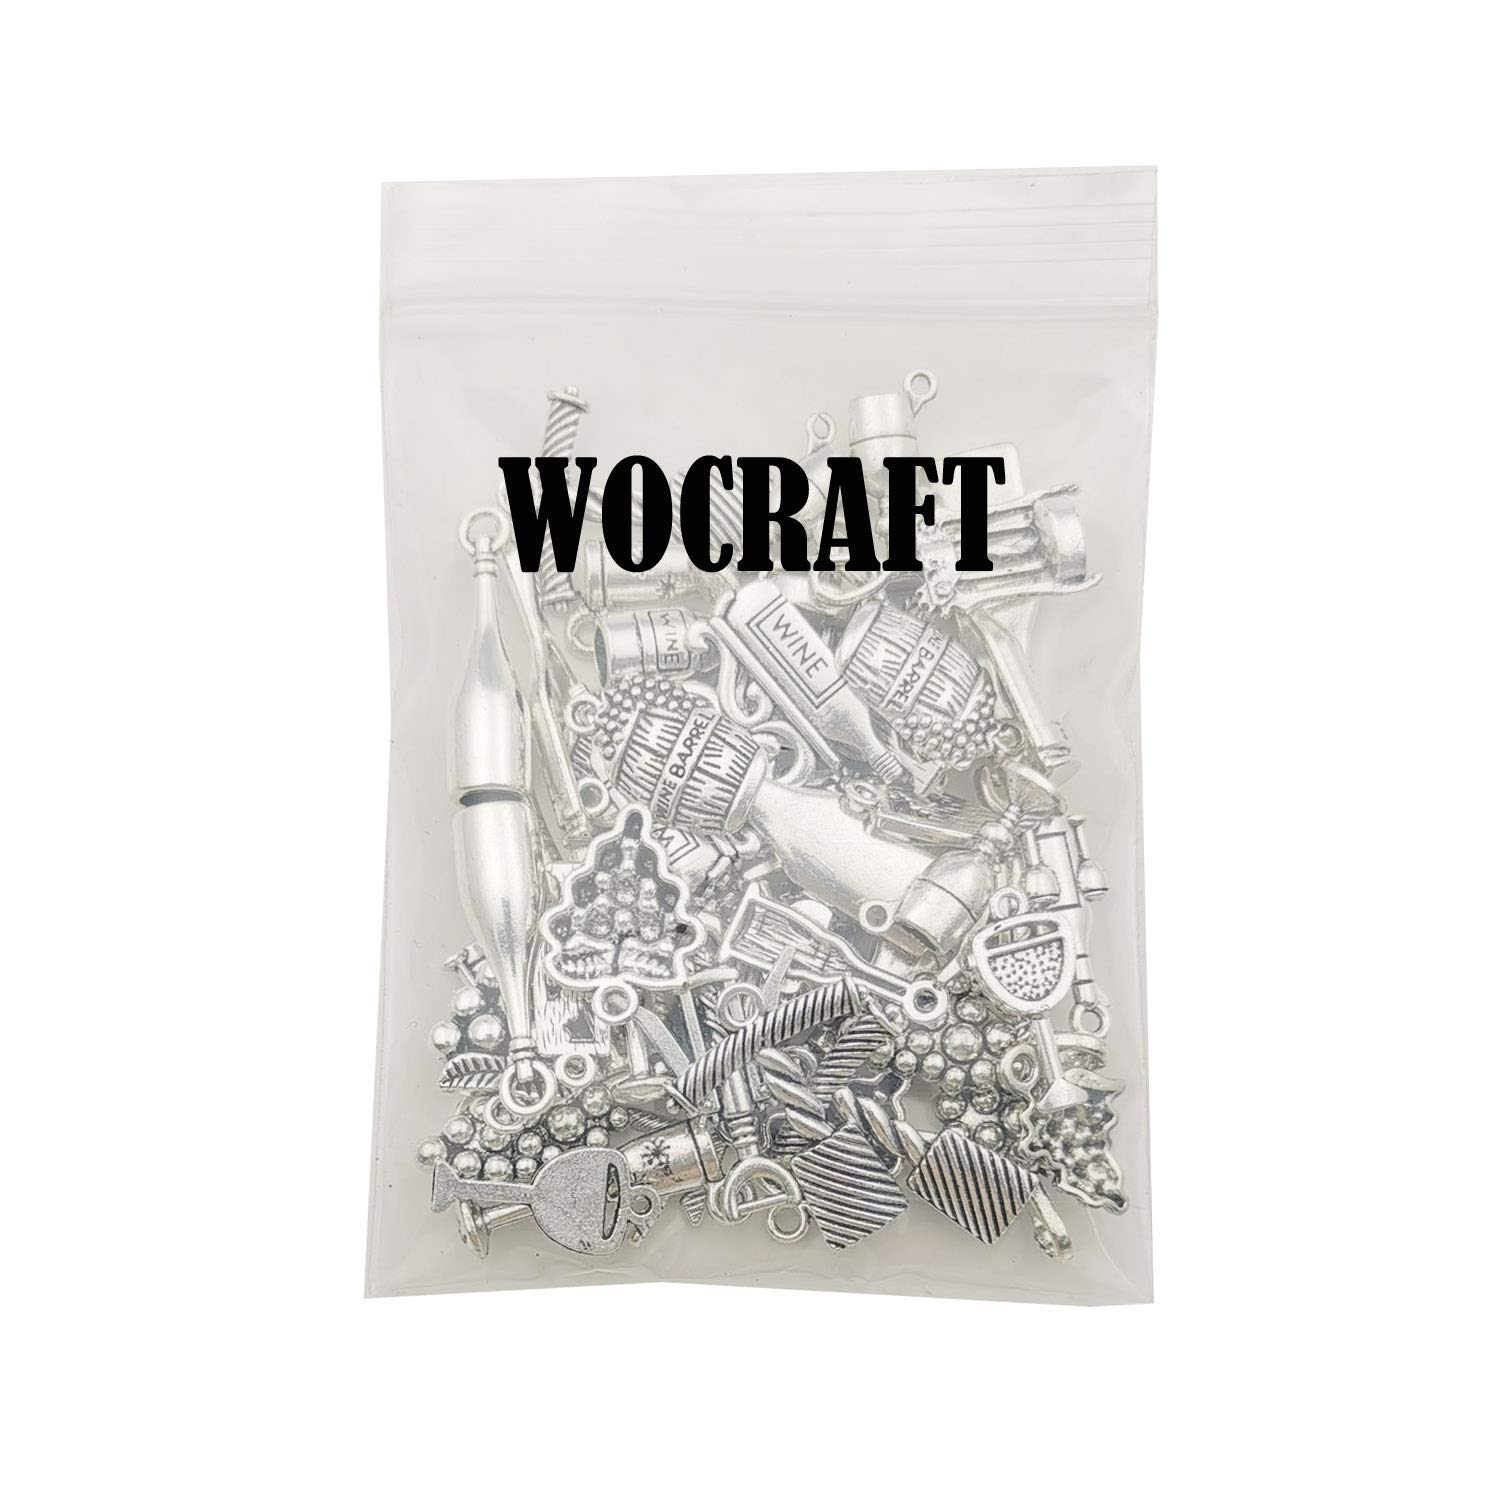 WOCRAFT 50pcs Craft Supplies Antique Silver Tasting Wine Grape Cocktail Glass Wine Opener Charms for Jewelry Making Findings Crafting Accessory for DIY Necklace Bracelet M307